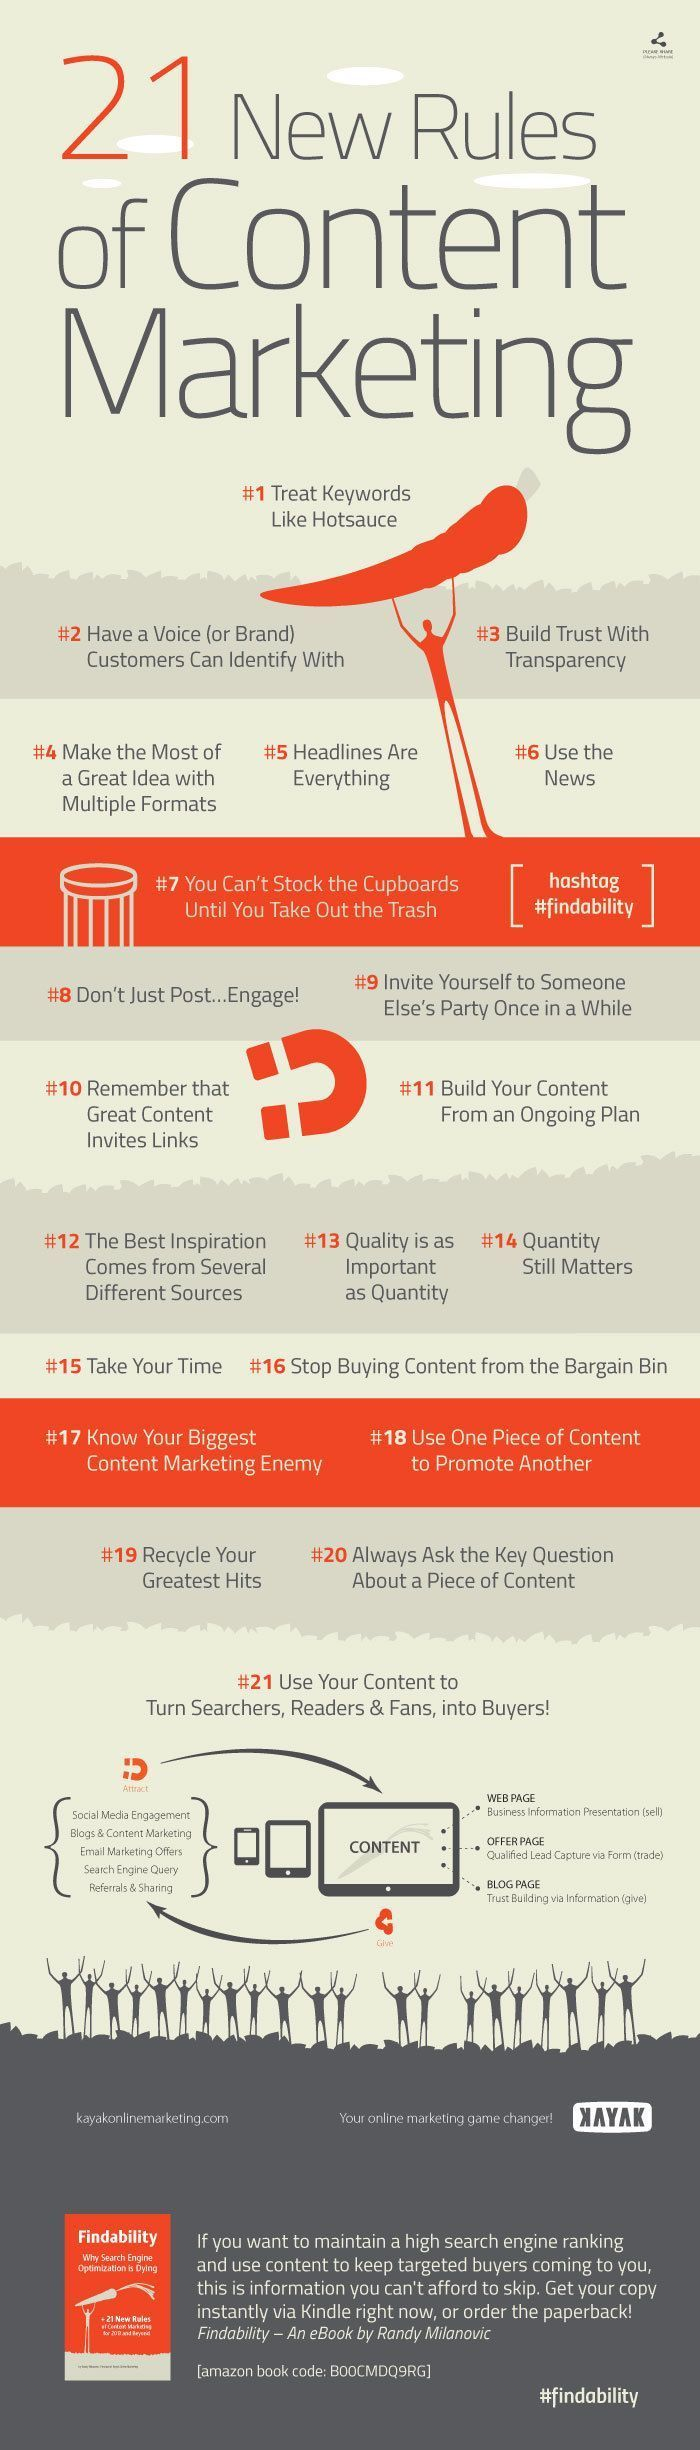 The 21 New Rules of #Content #Marketing [INFOGRAPHIC] #DigitalMarketingTips